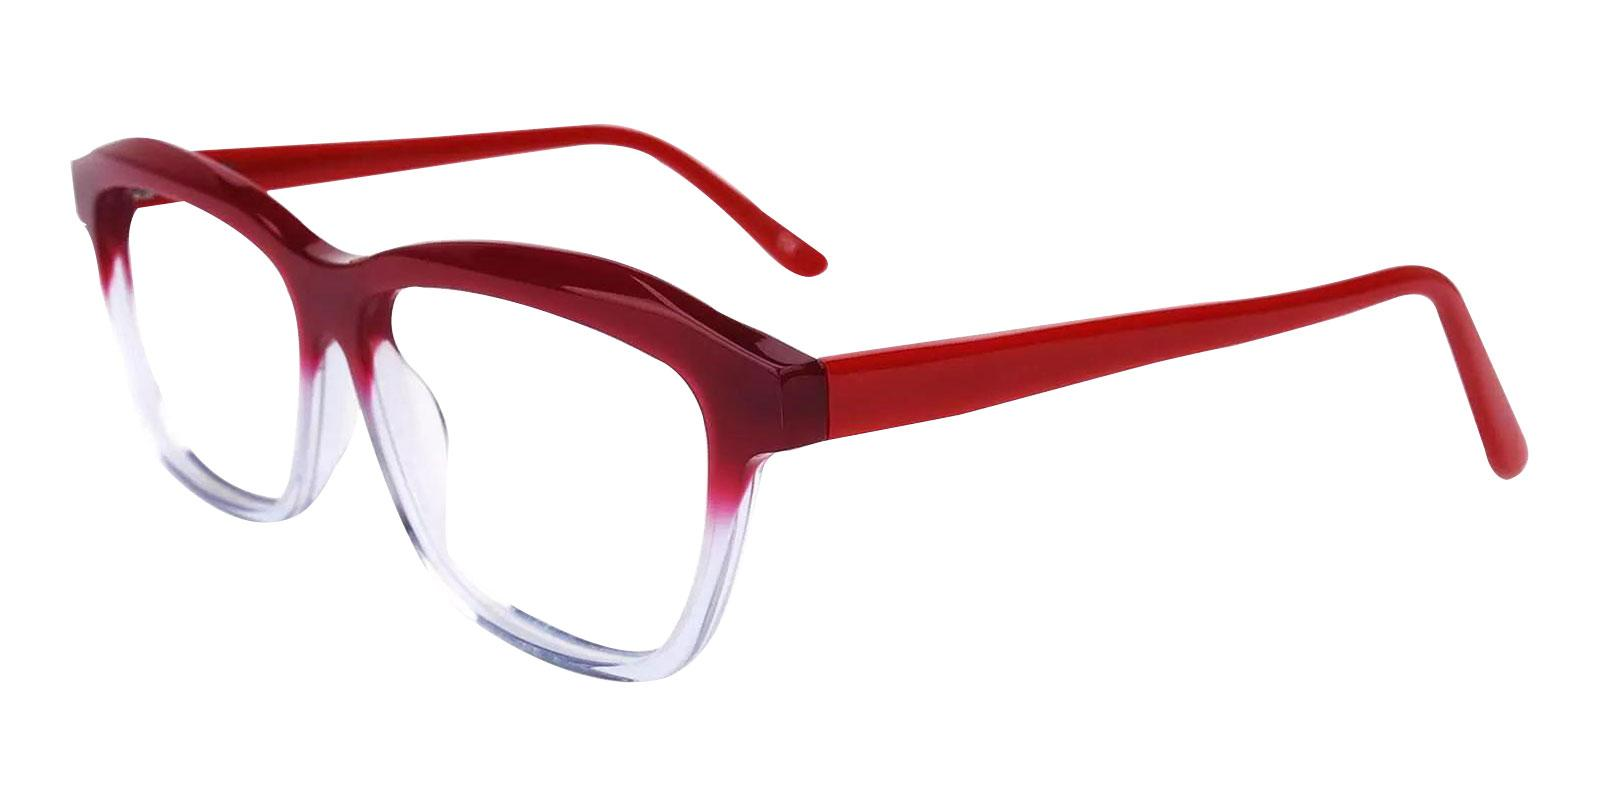 Sonia Red Acetate Eyeglasses , SpringHinges , UniversalBridgeFit Frames from ABBE Glasses